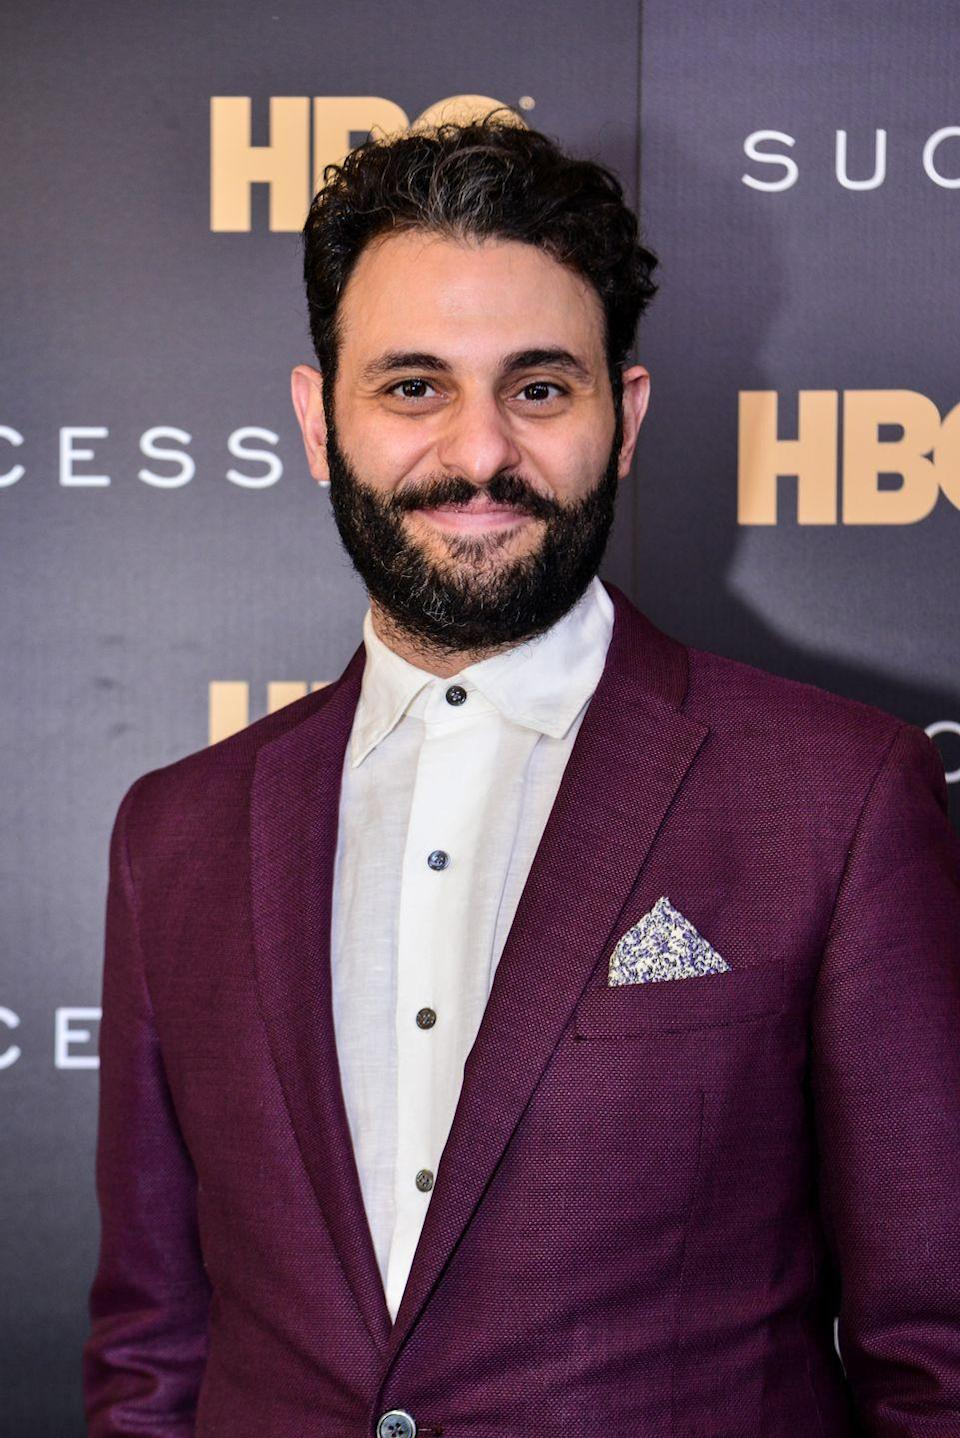 <p>Arian Moayed, known for playing Stewy Hosseini in Succession, stars as Anna's fast-talking lawyer Todd Spodek. He might be representing Anna, but Todd has his own motives in the series, hoping the case will earn him more respect in the legal world. </p>